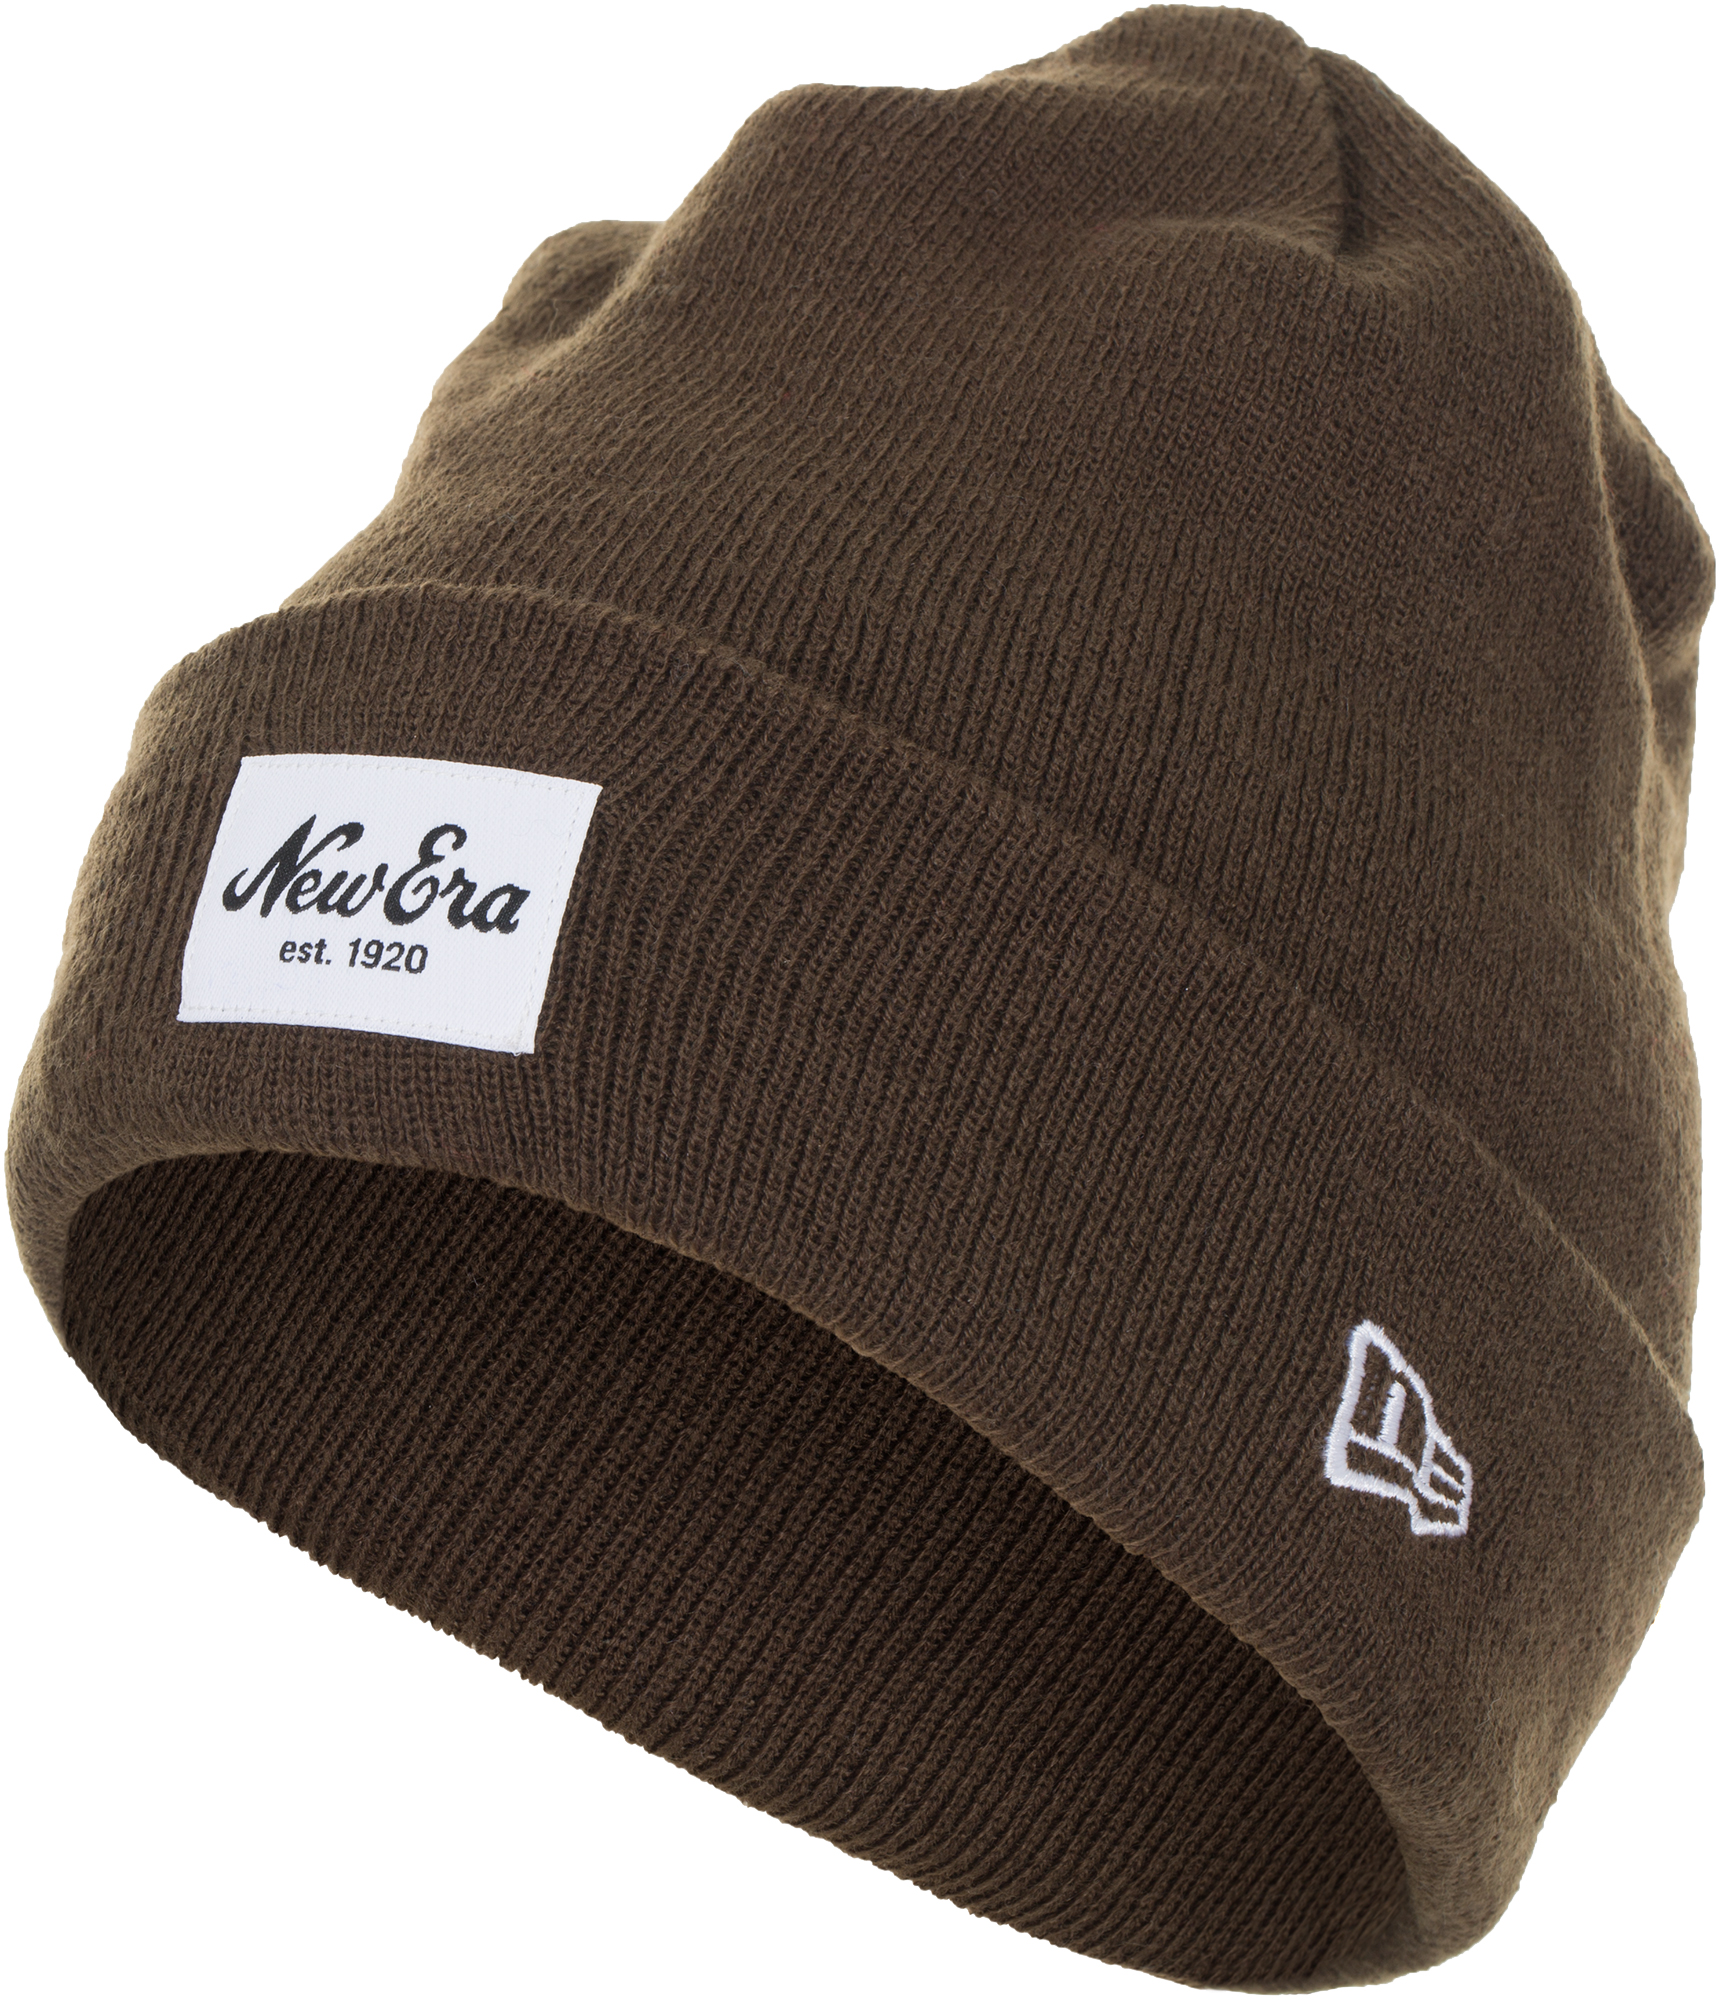 New Era Шапка New Era Lic 847 Ne Patch Knit цена